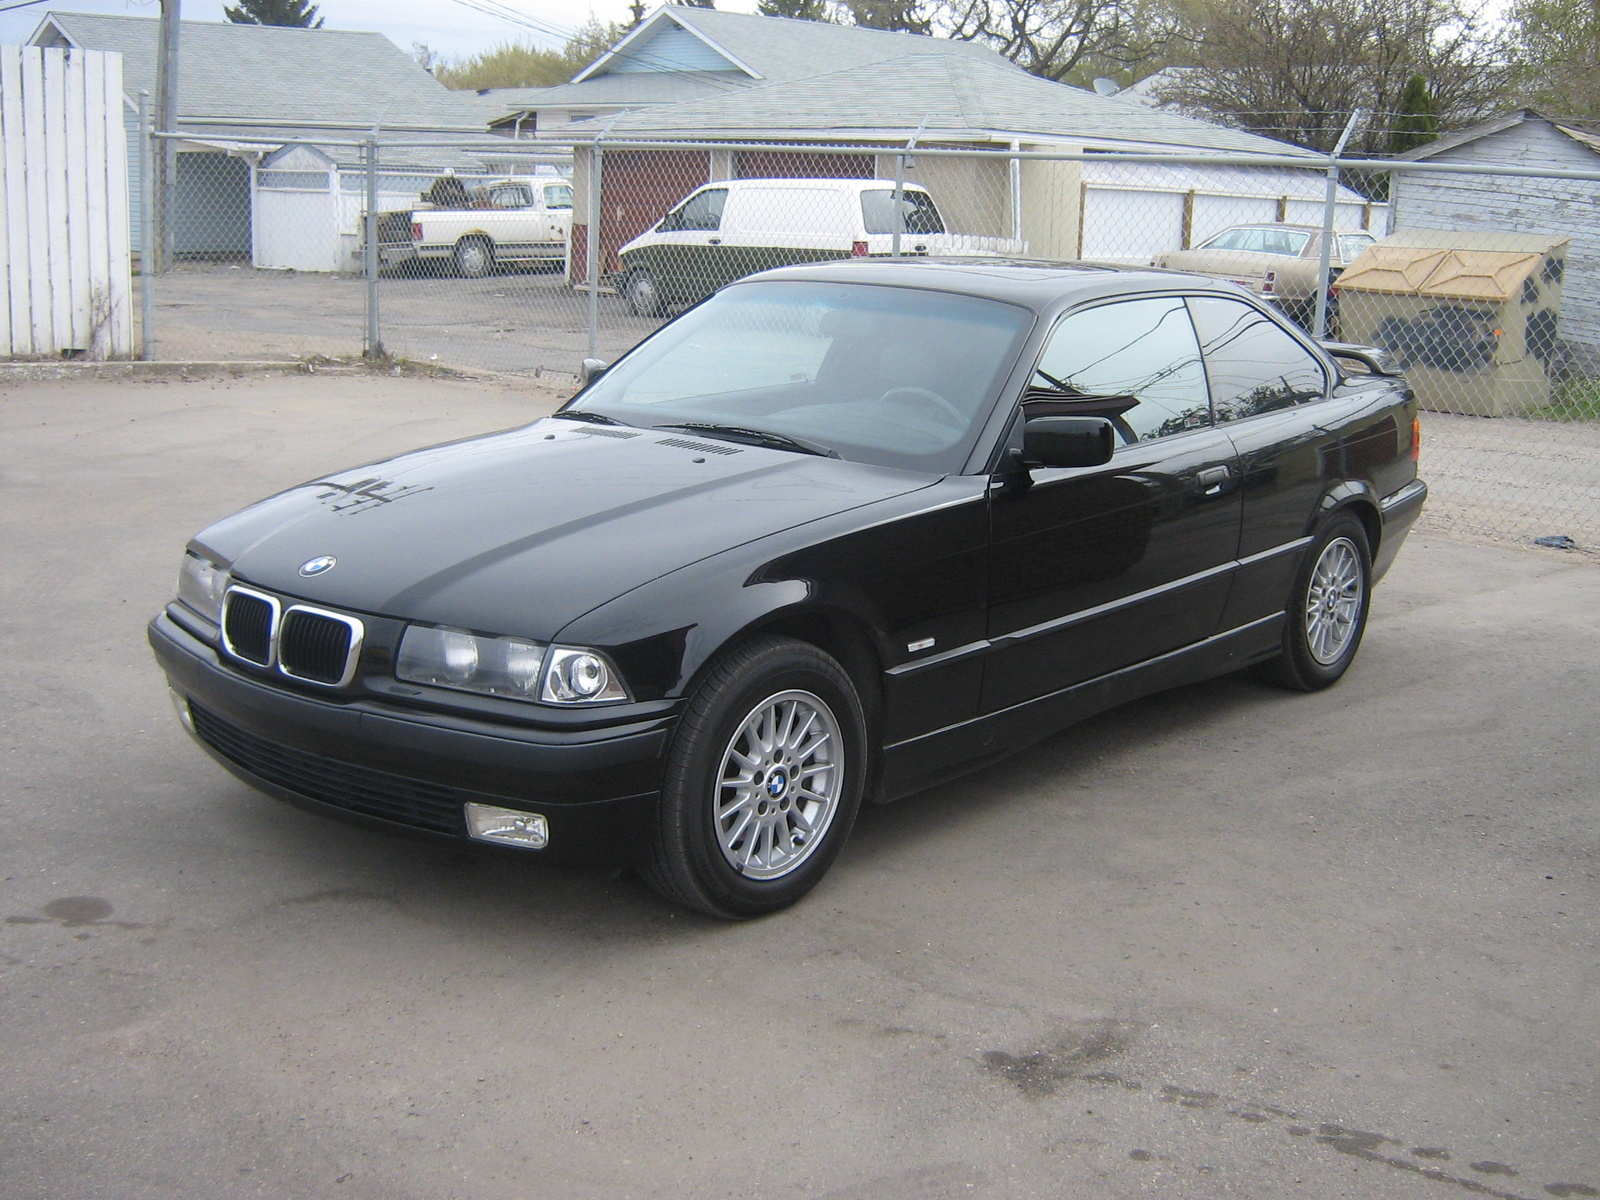 BMW 3 series 320td 1999 photo - 12